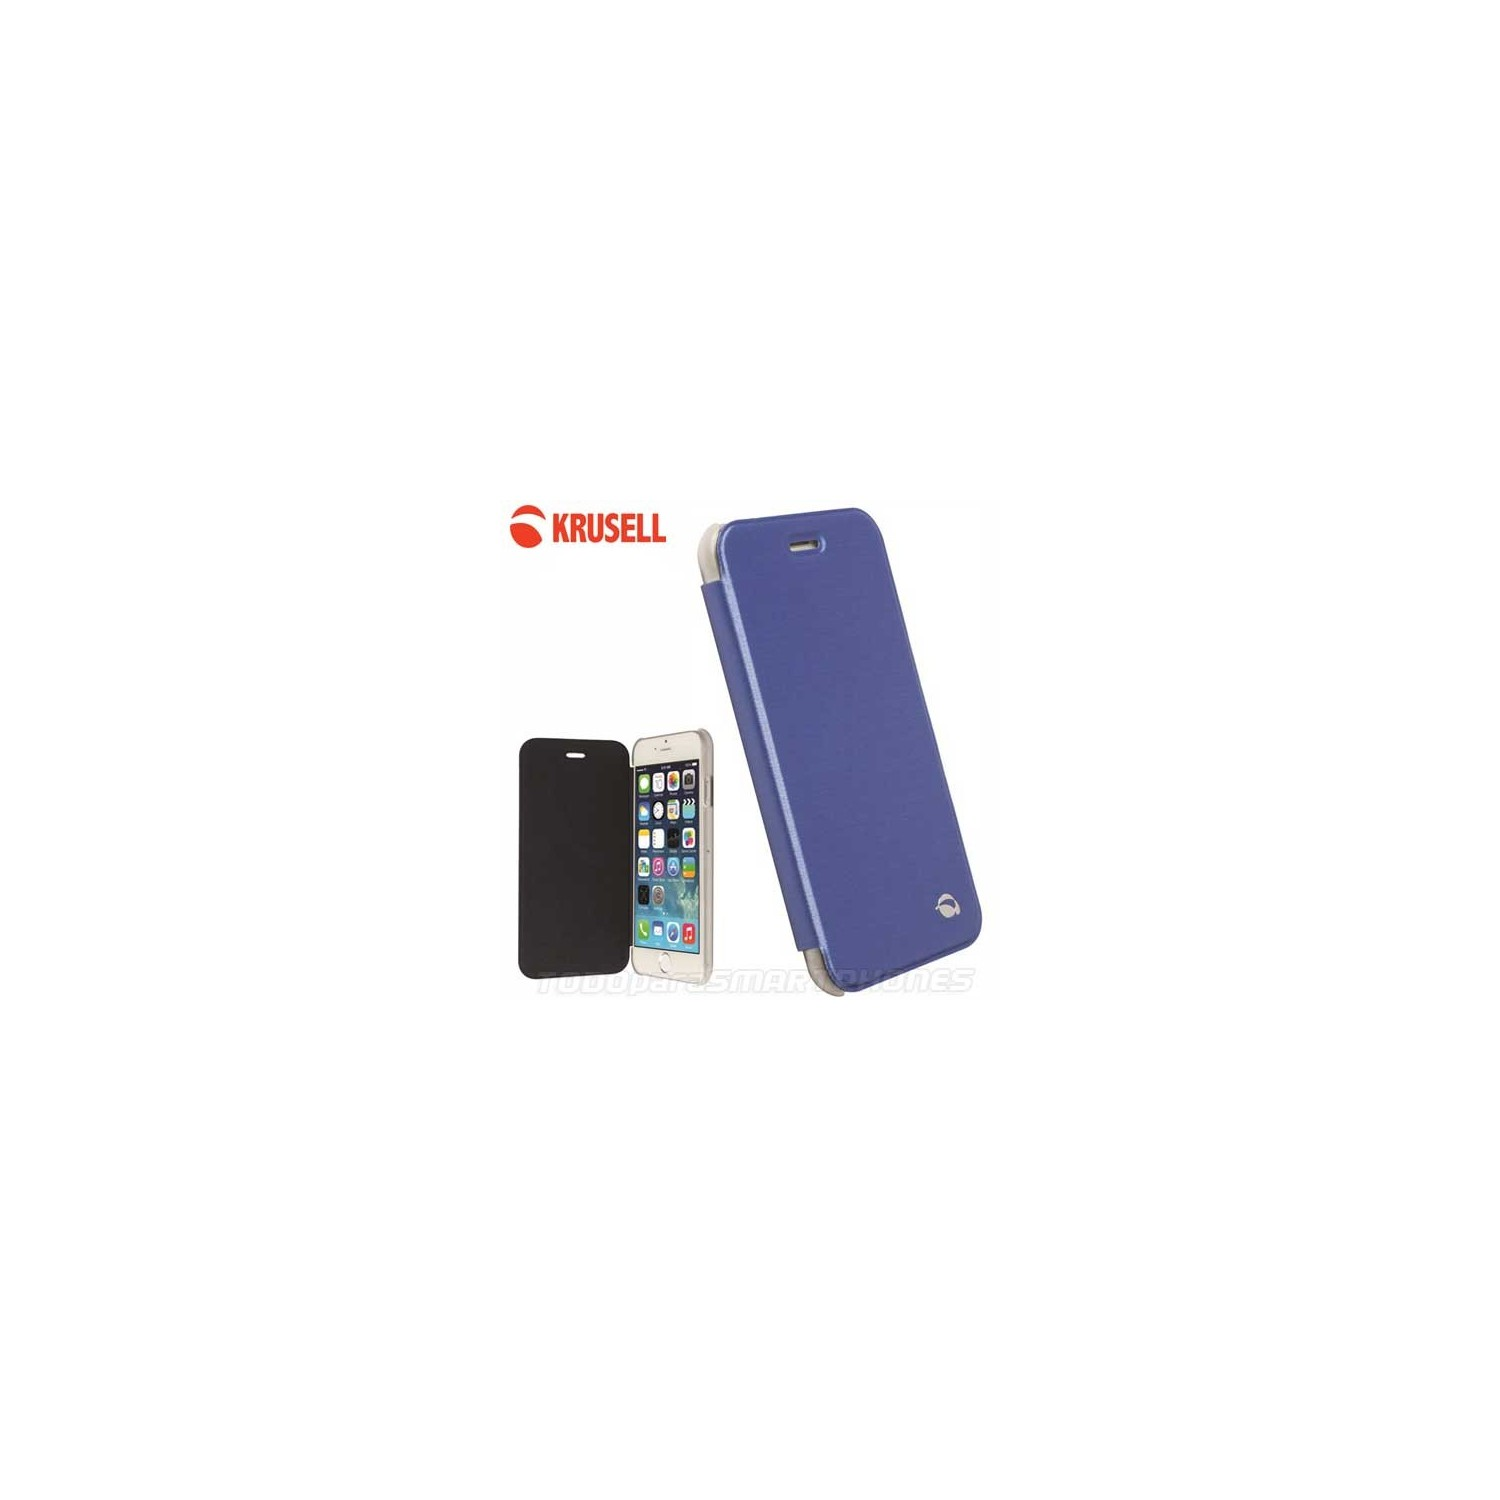 Case - Krusell Boden FlipCover for iPhone 6 Blue